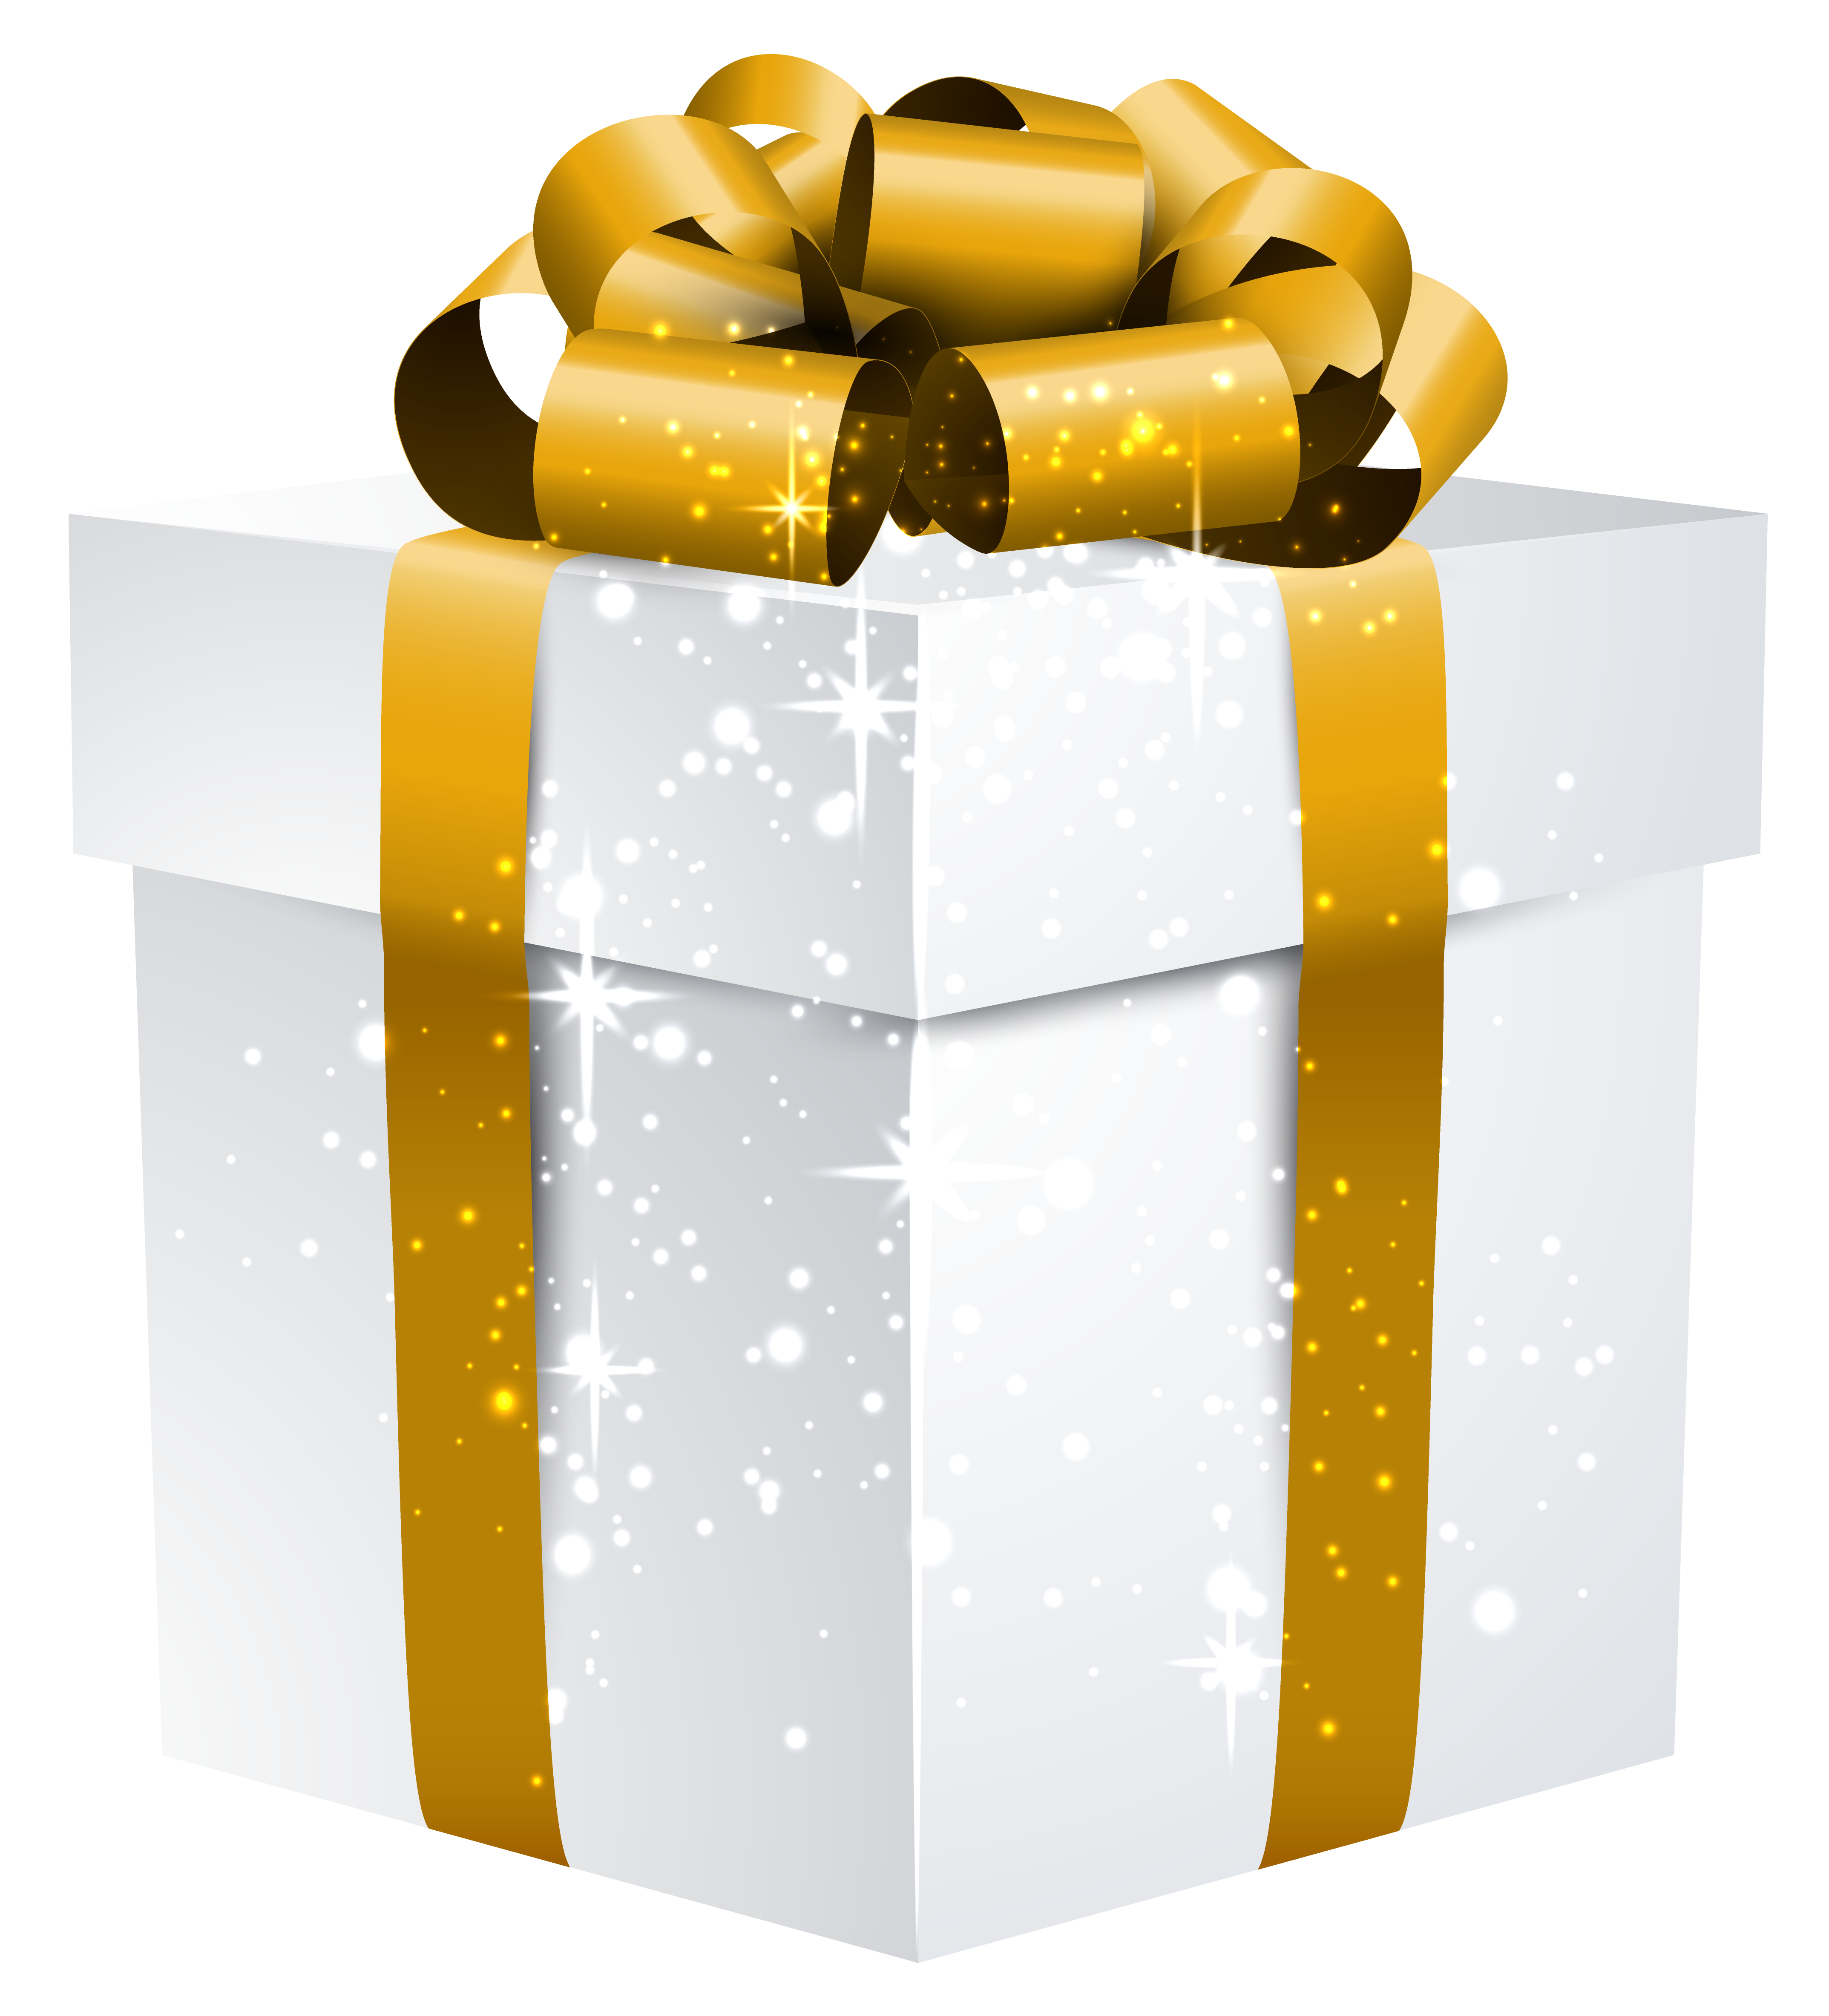 White Shining Gift Box with Gold Bow PNG Clipart Image